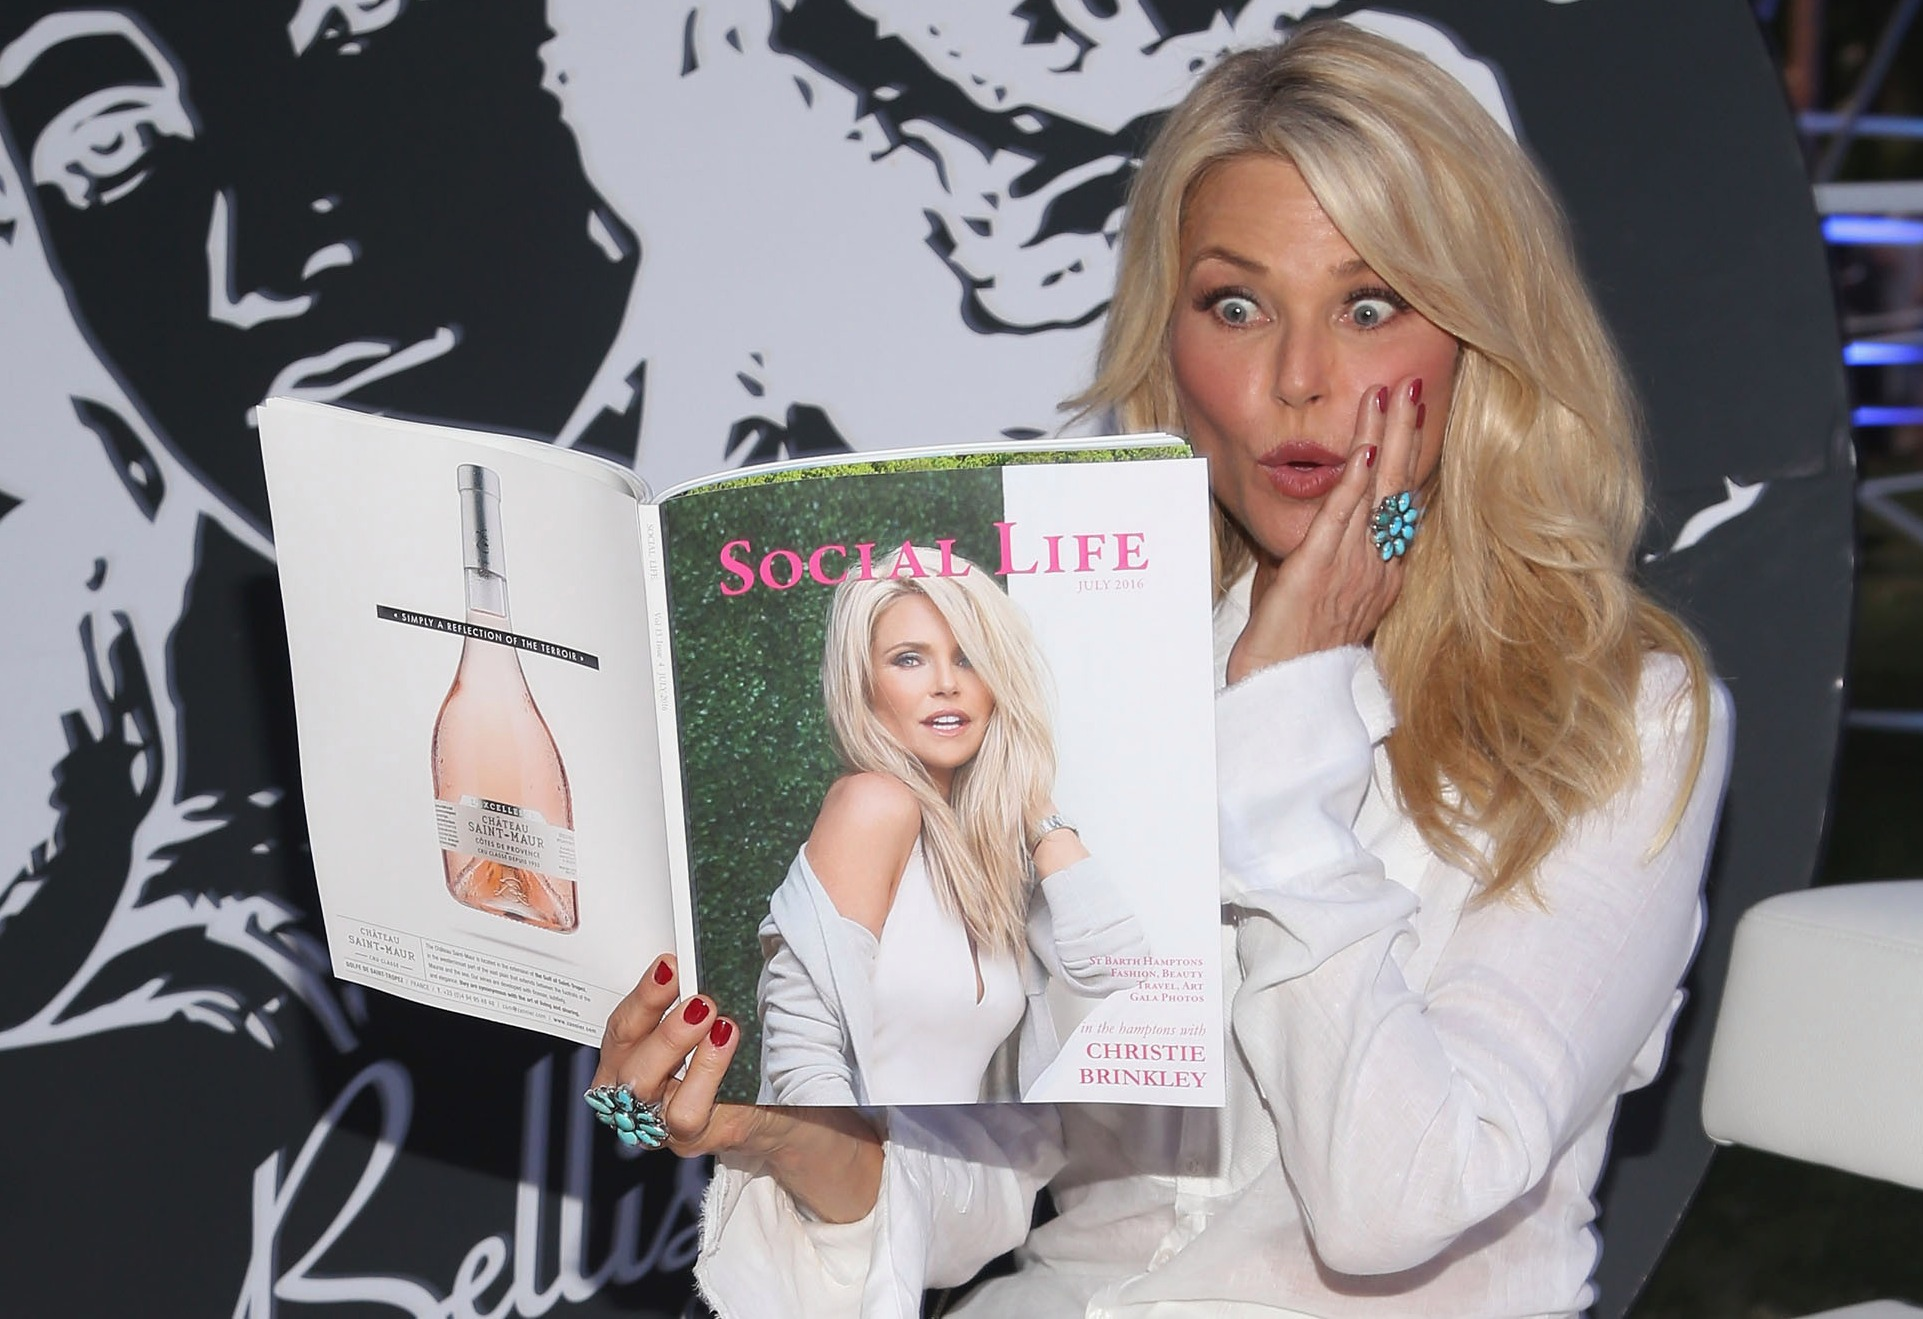 christine brinkley posing with magazine at St Barth Hamptons Annual Event